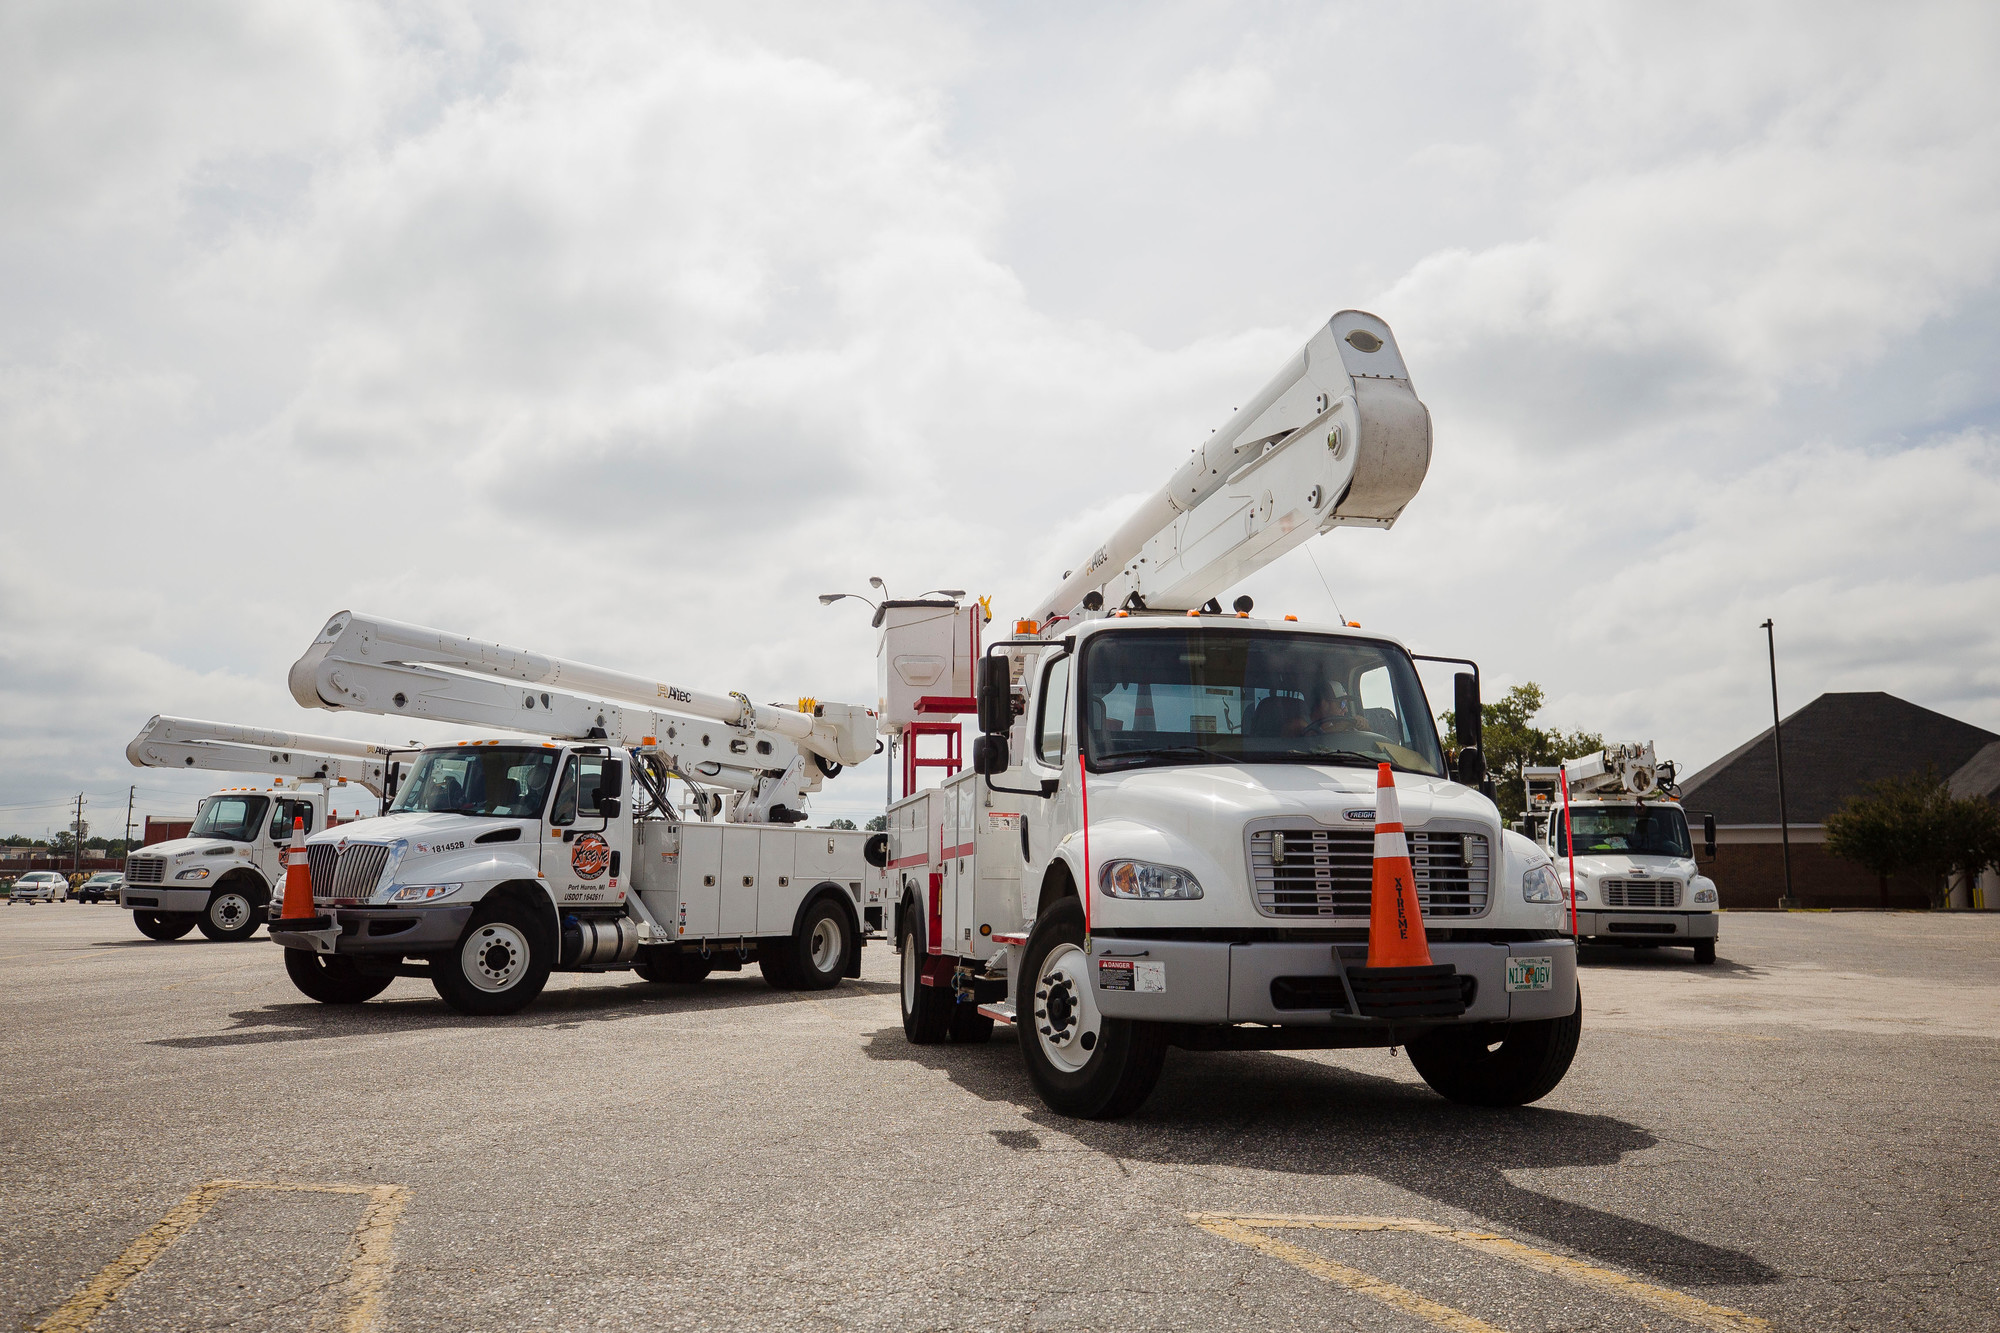 Xtreme Powerline and Construction trucks sit in the parking lot of KMart in Sumter. The company is out of Port Huron, MI, but also has crews in Sumter from its Florida office as well.